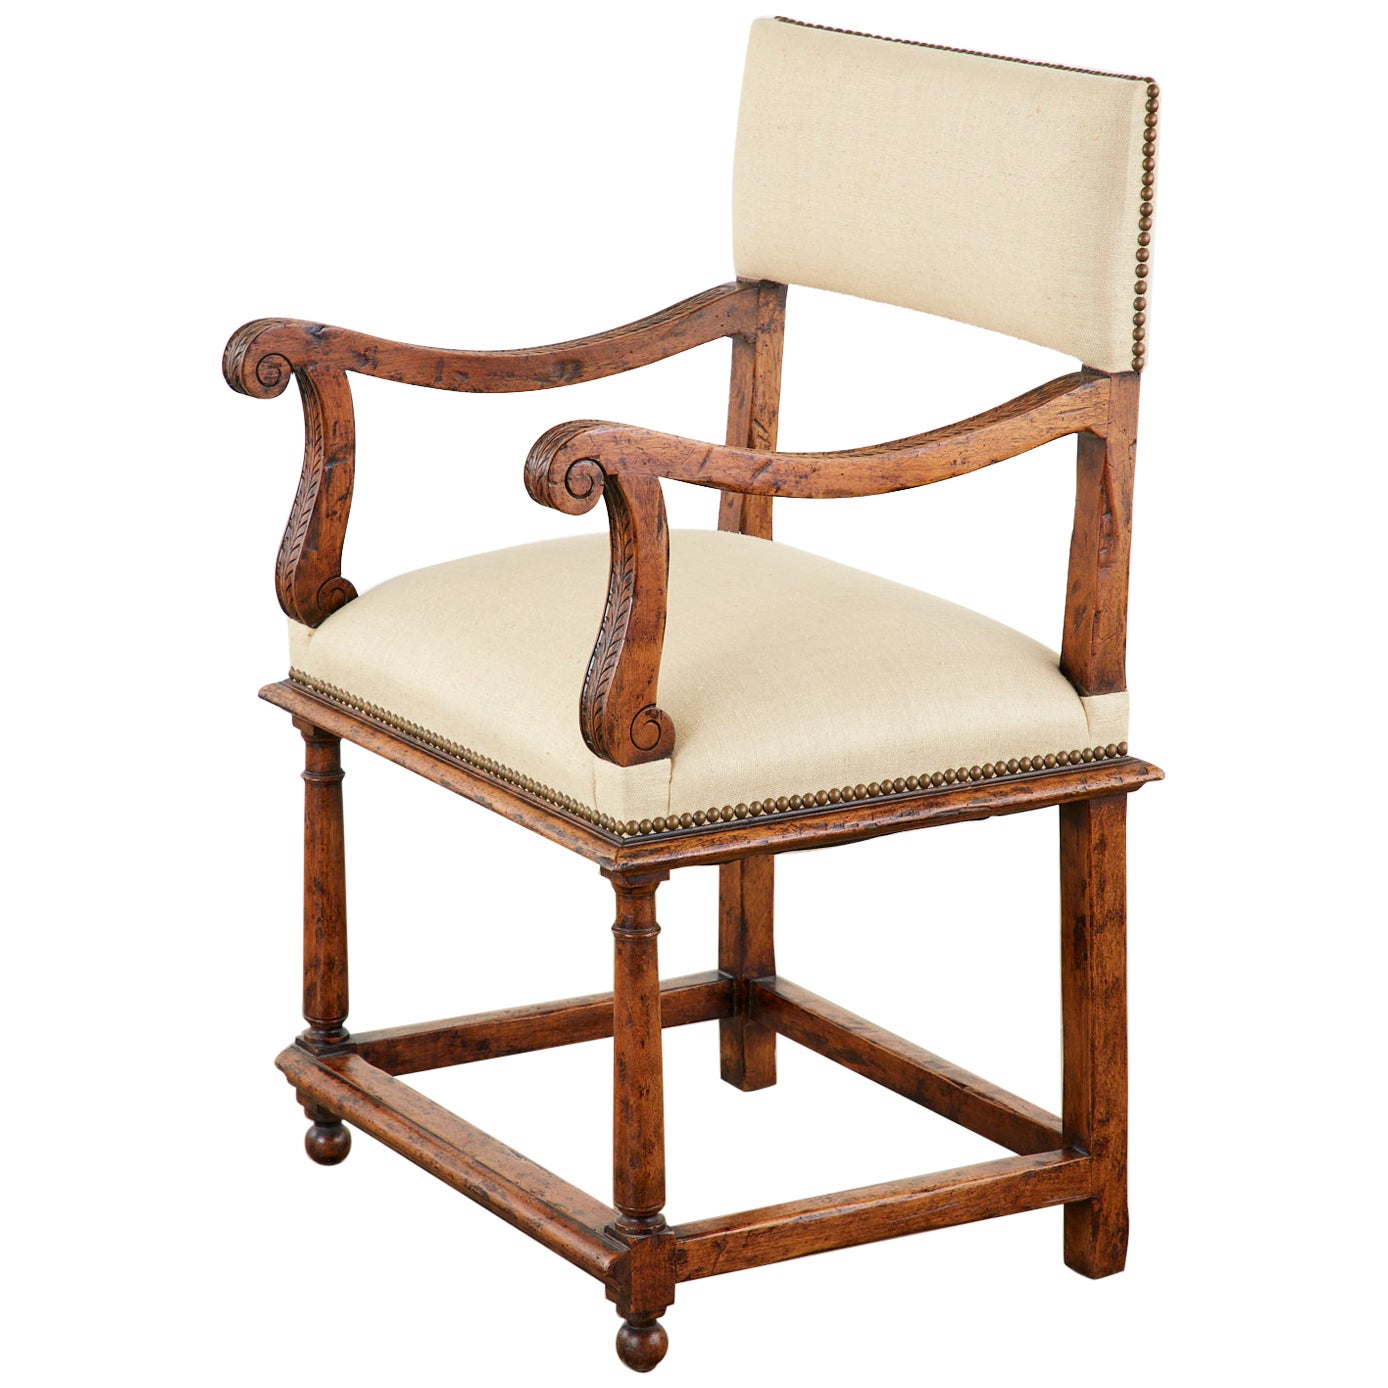 English Gothic Revival Wainscot Style Carved Hall Chair